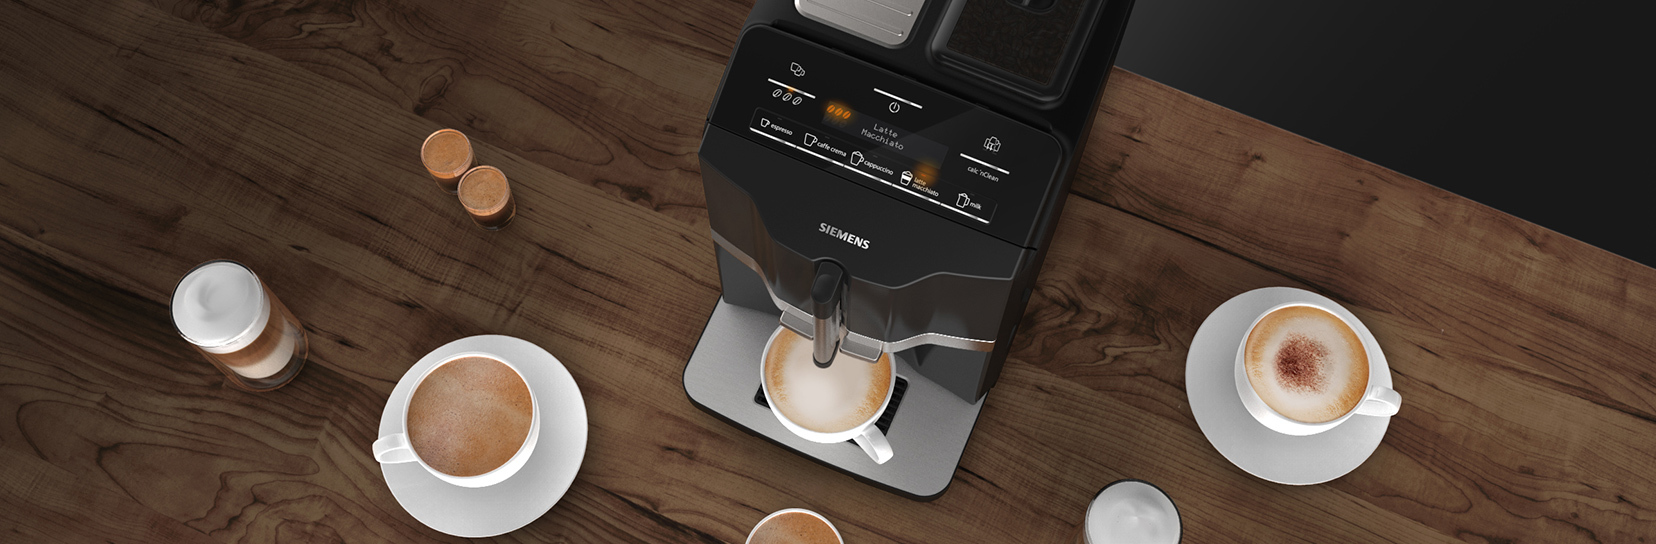 Teaser_pearl-creative-product-design-for-siemens-eq3-coffee-machine-main_1656x544_01